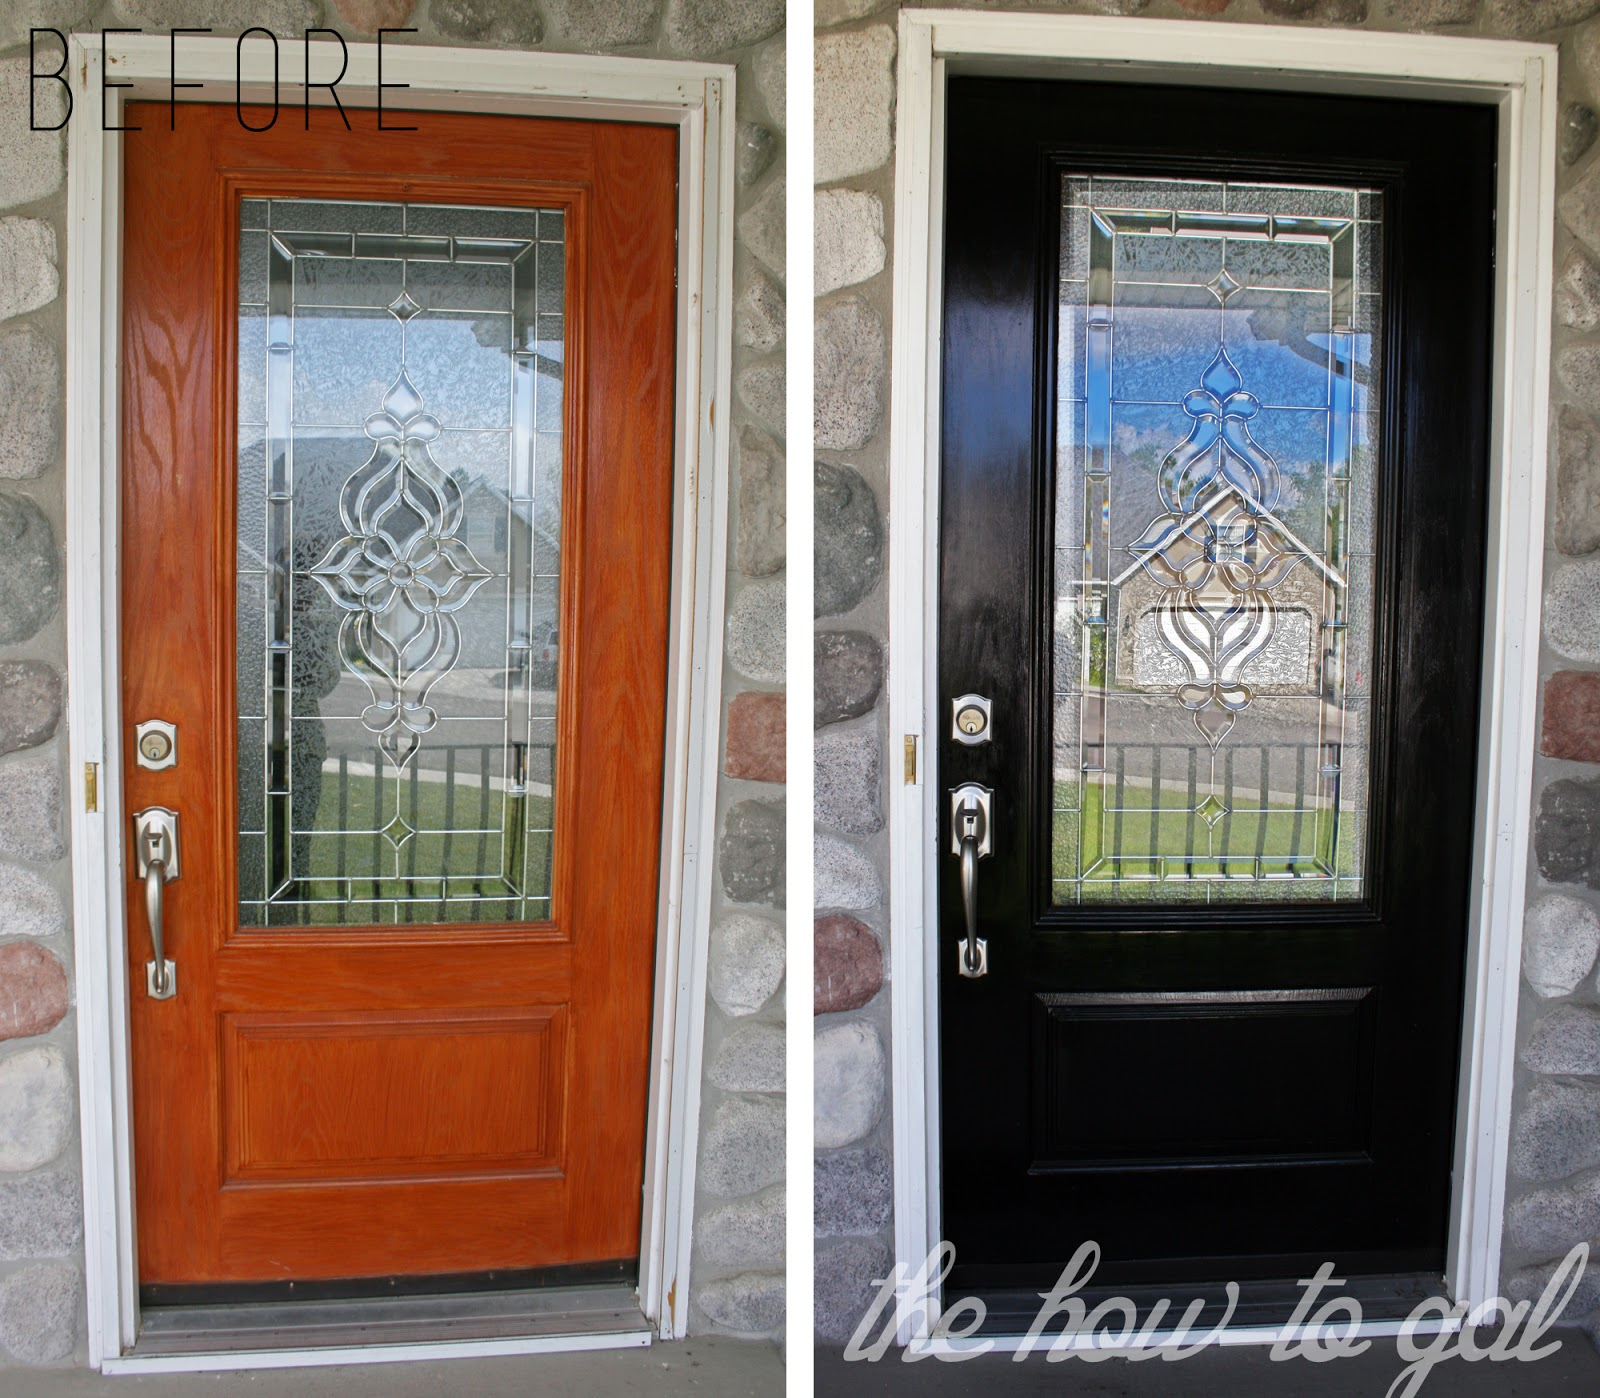 How To Paint A Front Door the how-to gal: how-to paint your front door with 3m diy